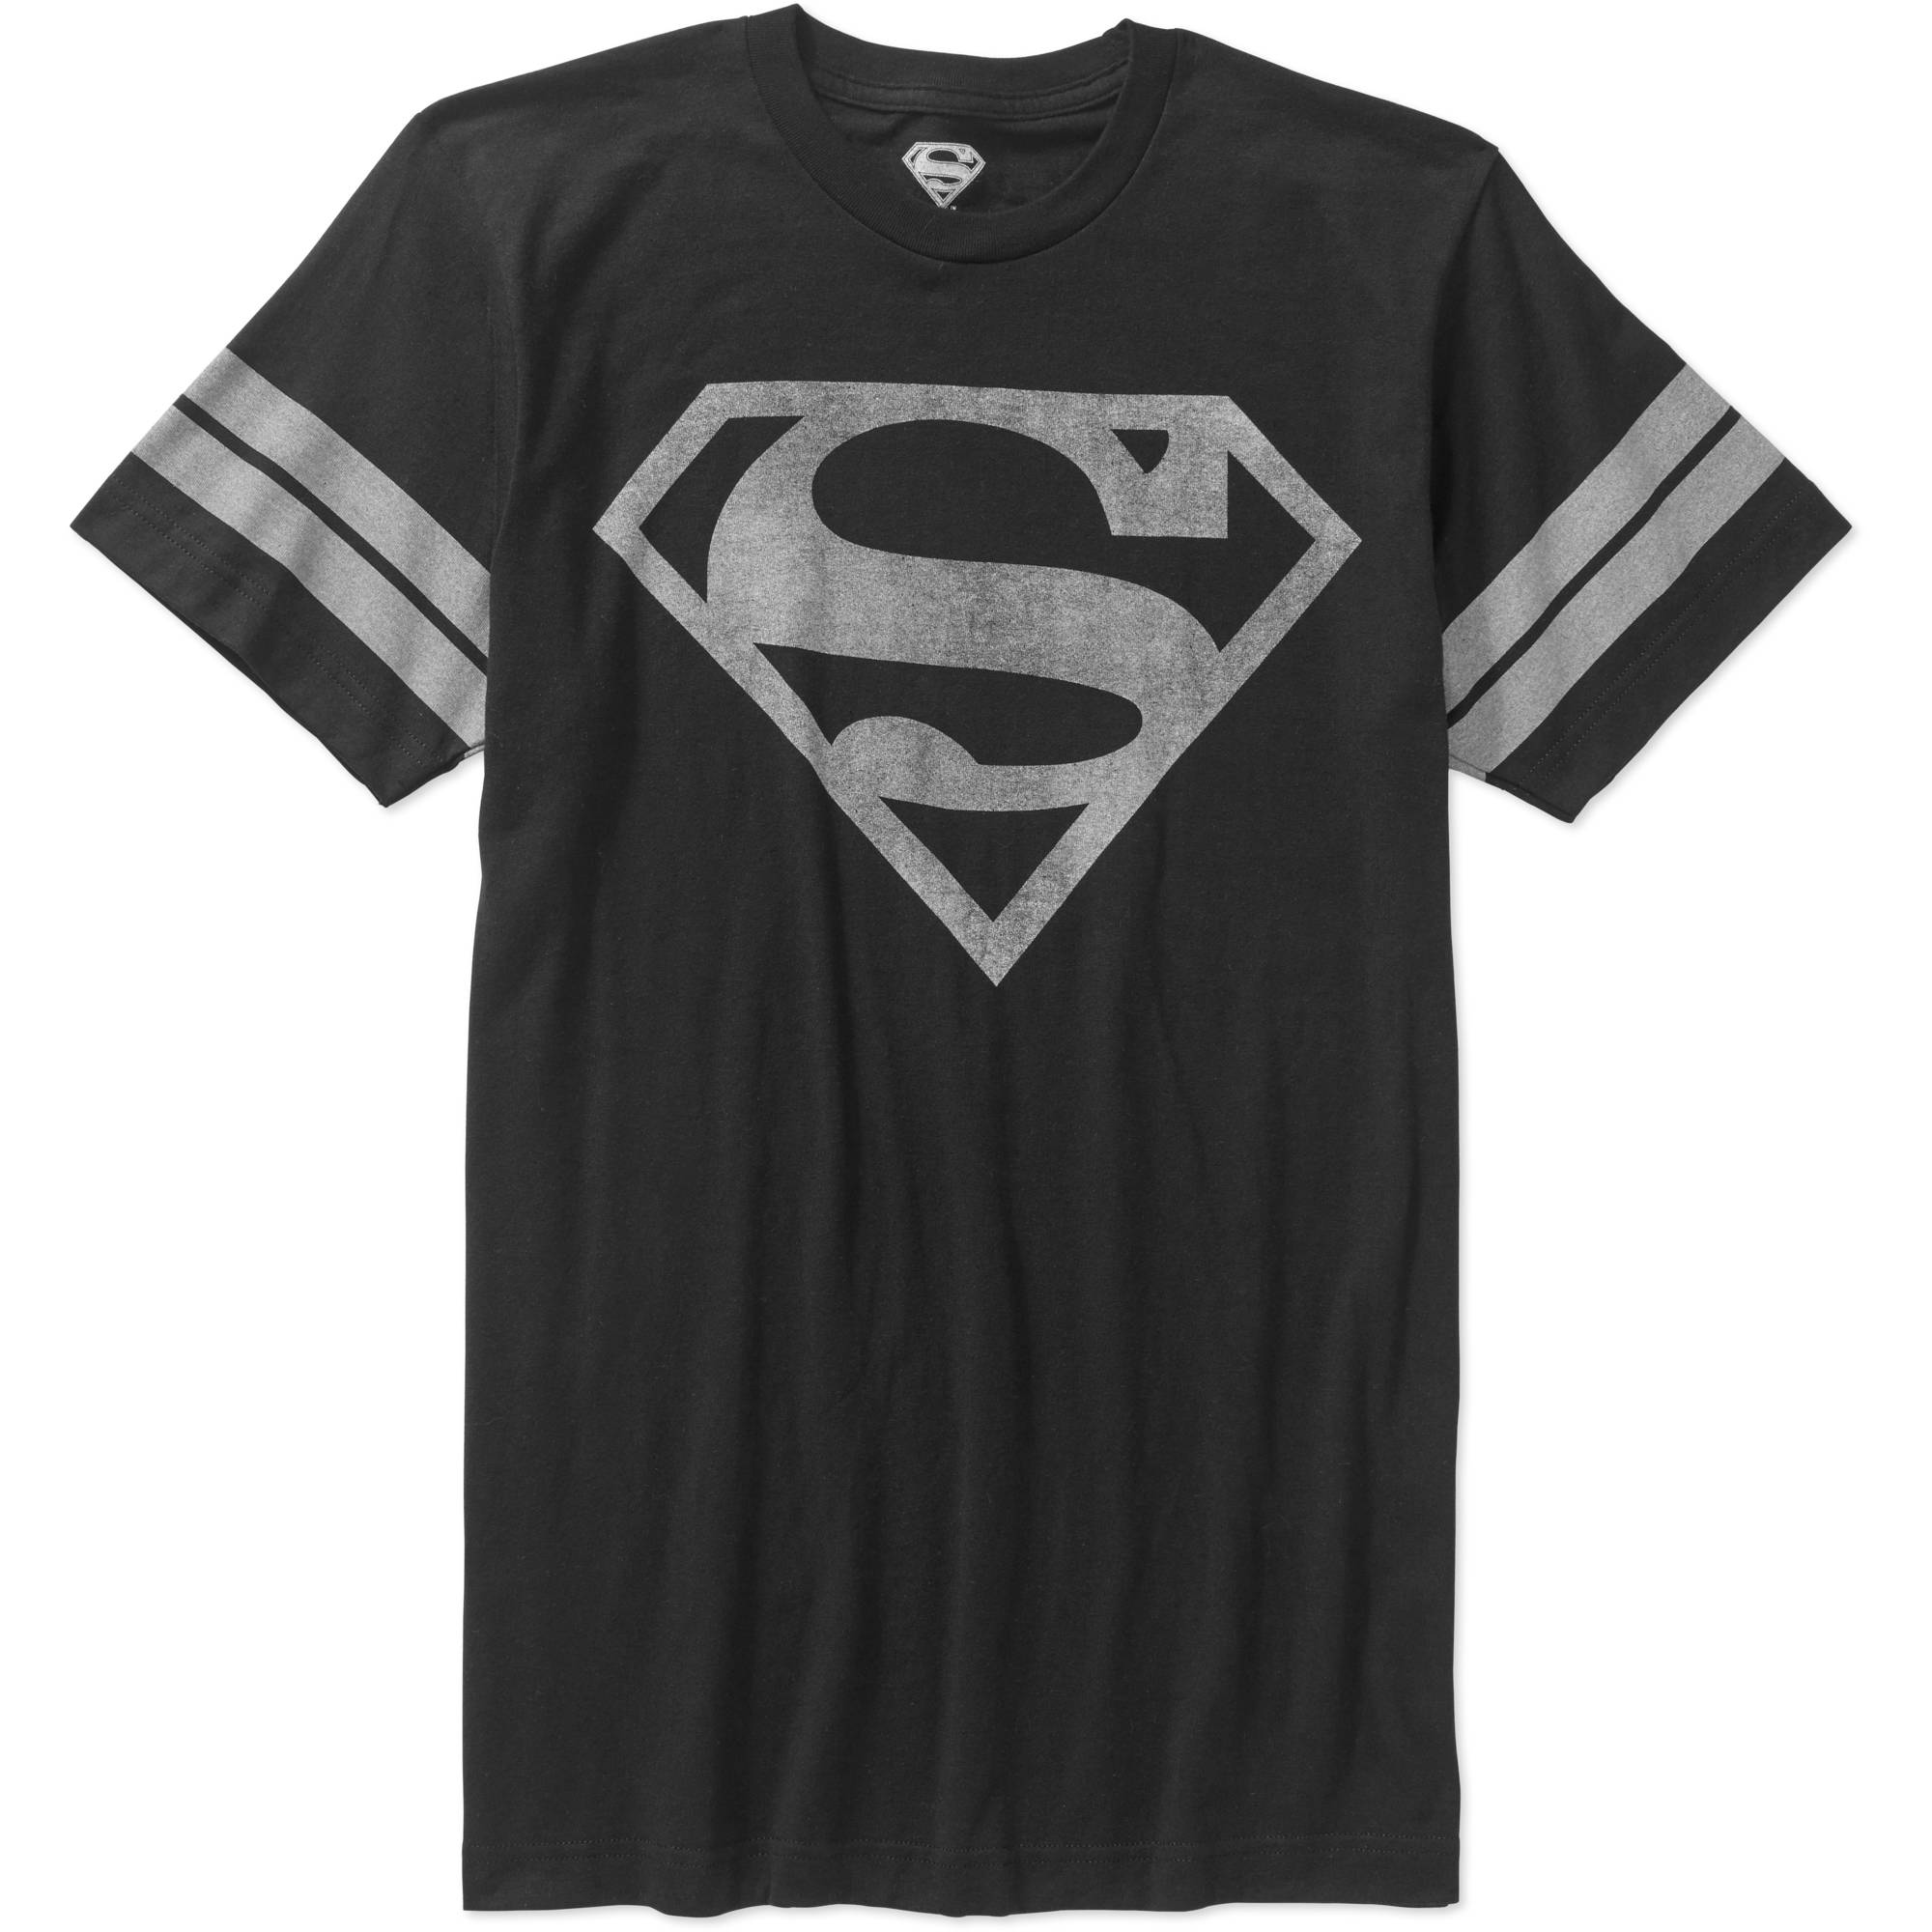 70d8dd1c393209 DC - Dc Superman men's logo graphic tee, up to size 3xl - Walmart.com